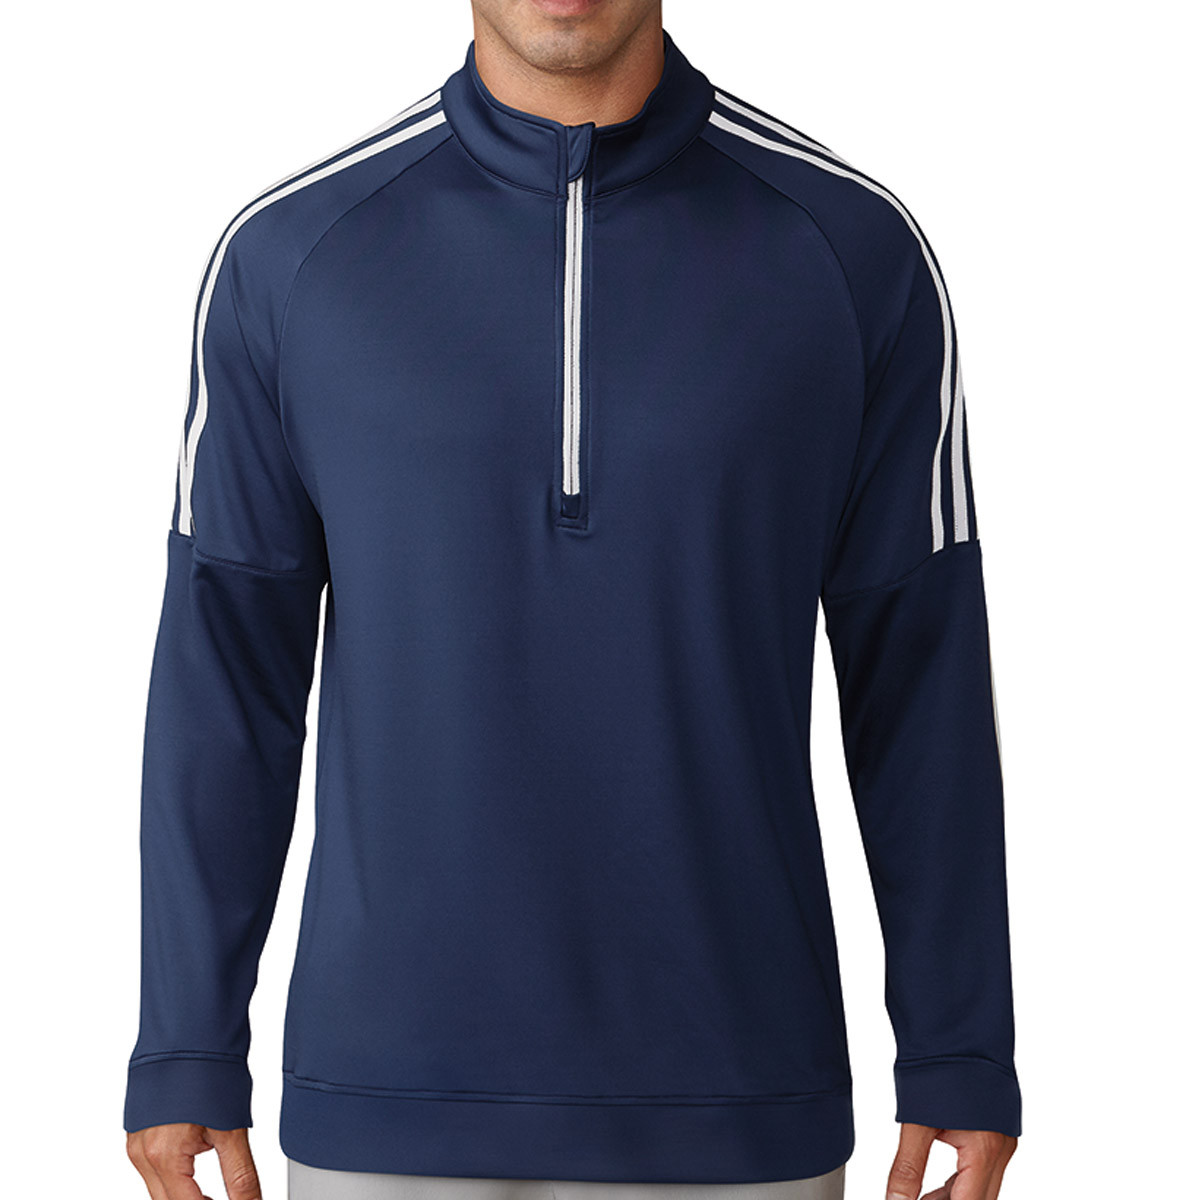 online store 550bf 96423 adidas Golf Mens 3-Stripes 1 4 Zip Pullover